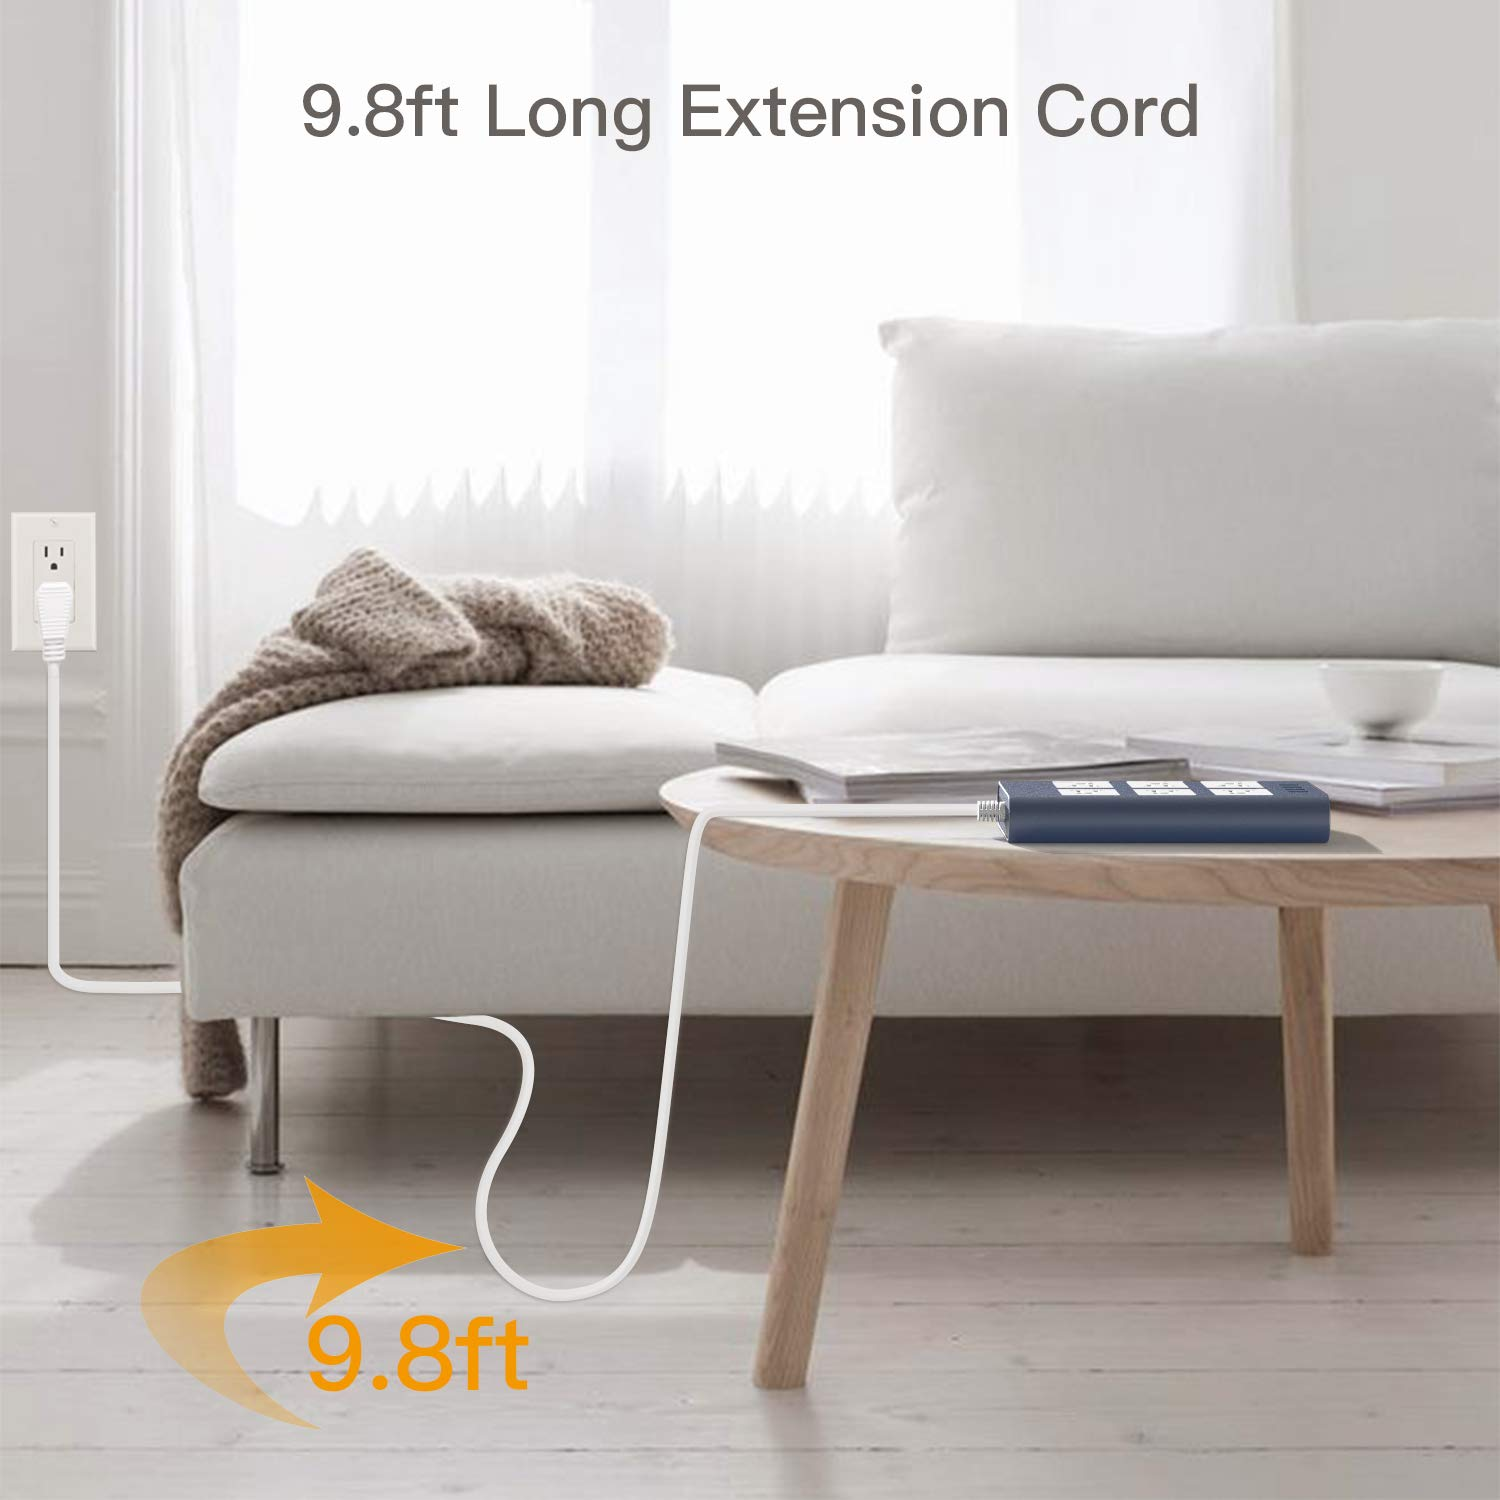 White JACKYLED Flat Plug 9.8ft Long Extension Cord 3.1A 4 USB Ports 6-Outlet Fast Charge Electric Outlet Fireproof Desktop Charger for Phone Computer Laptop 15A Power Strip Surge Protector